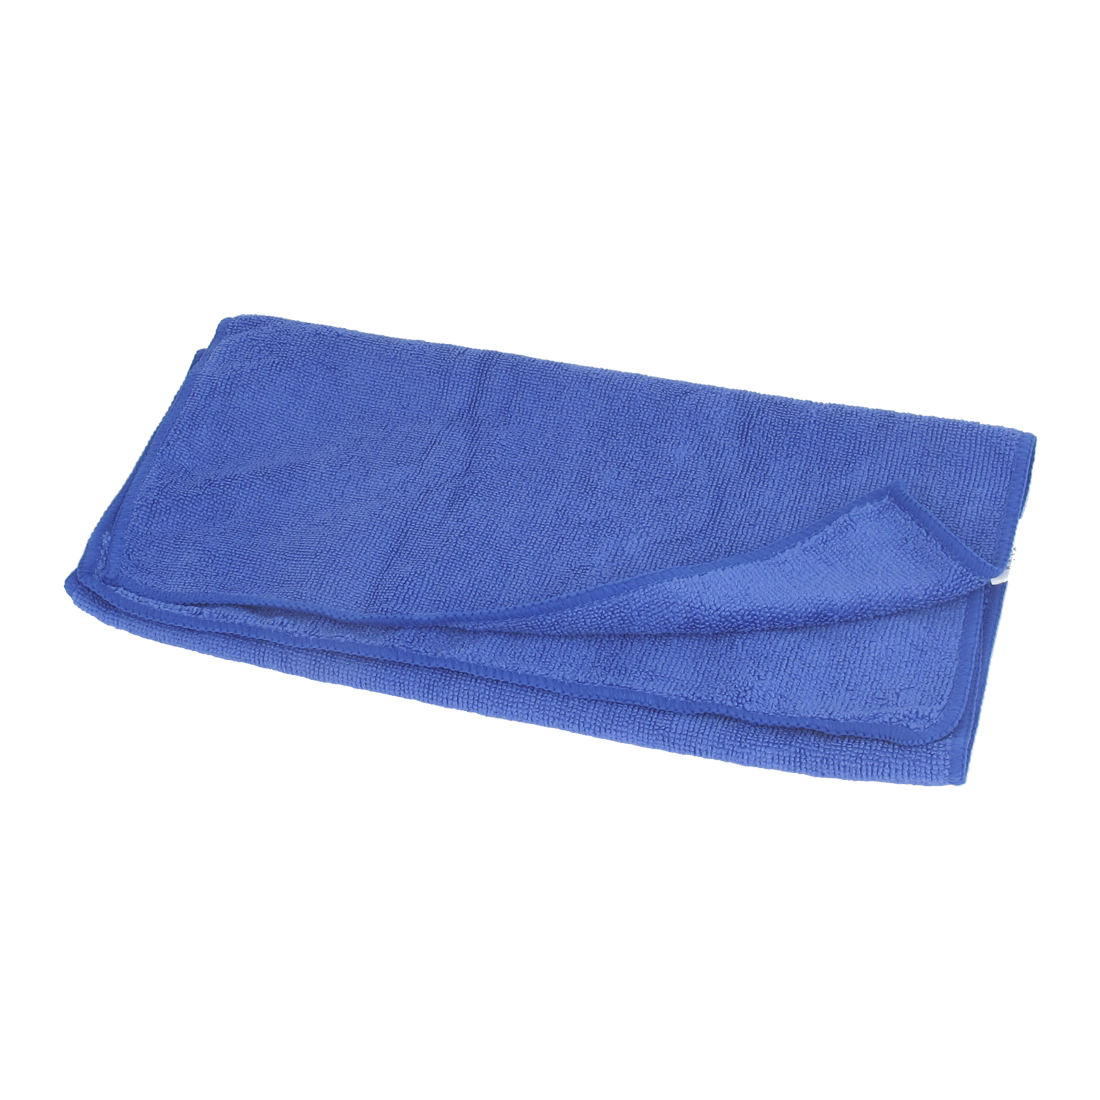 64cm x 33cm Blue Microfiber Rectangle Drying Bath Shower Facial Towel Sheet Facecloth Wash Cleaning Cloth